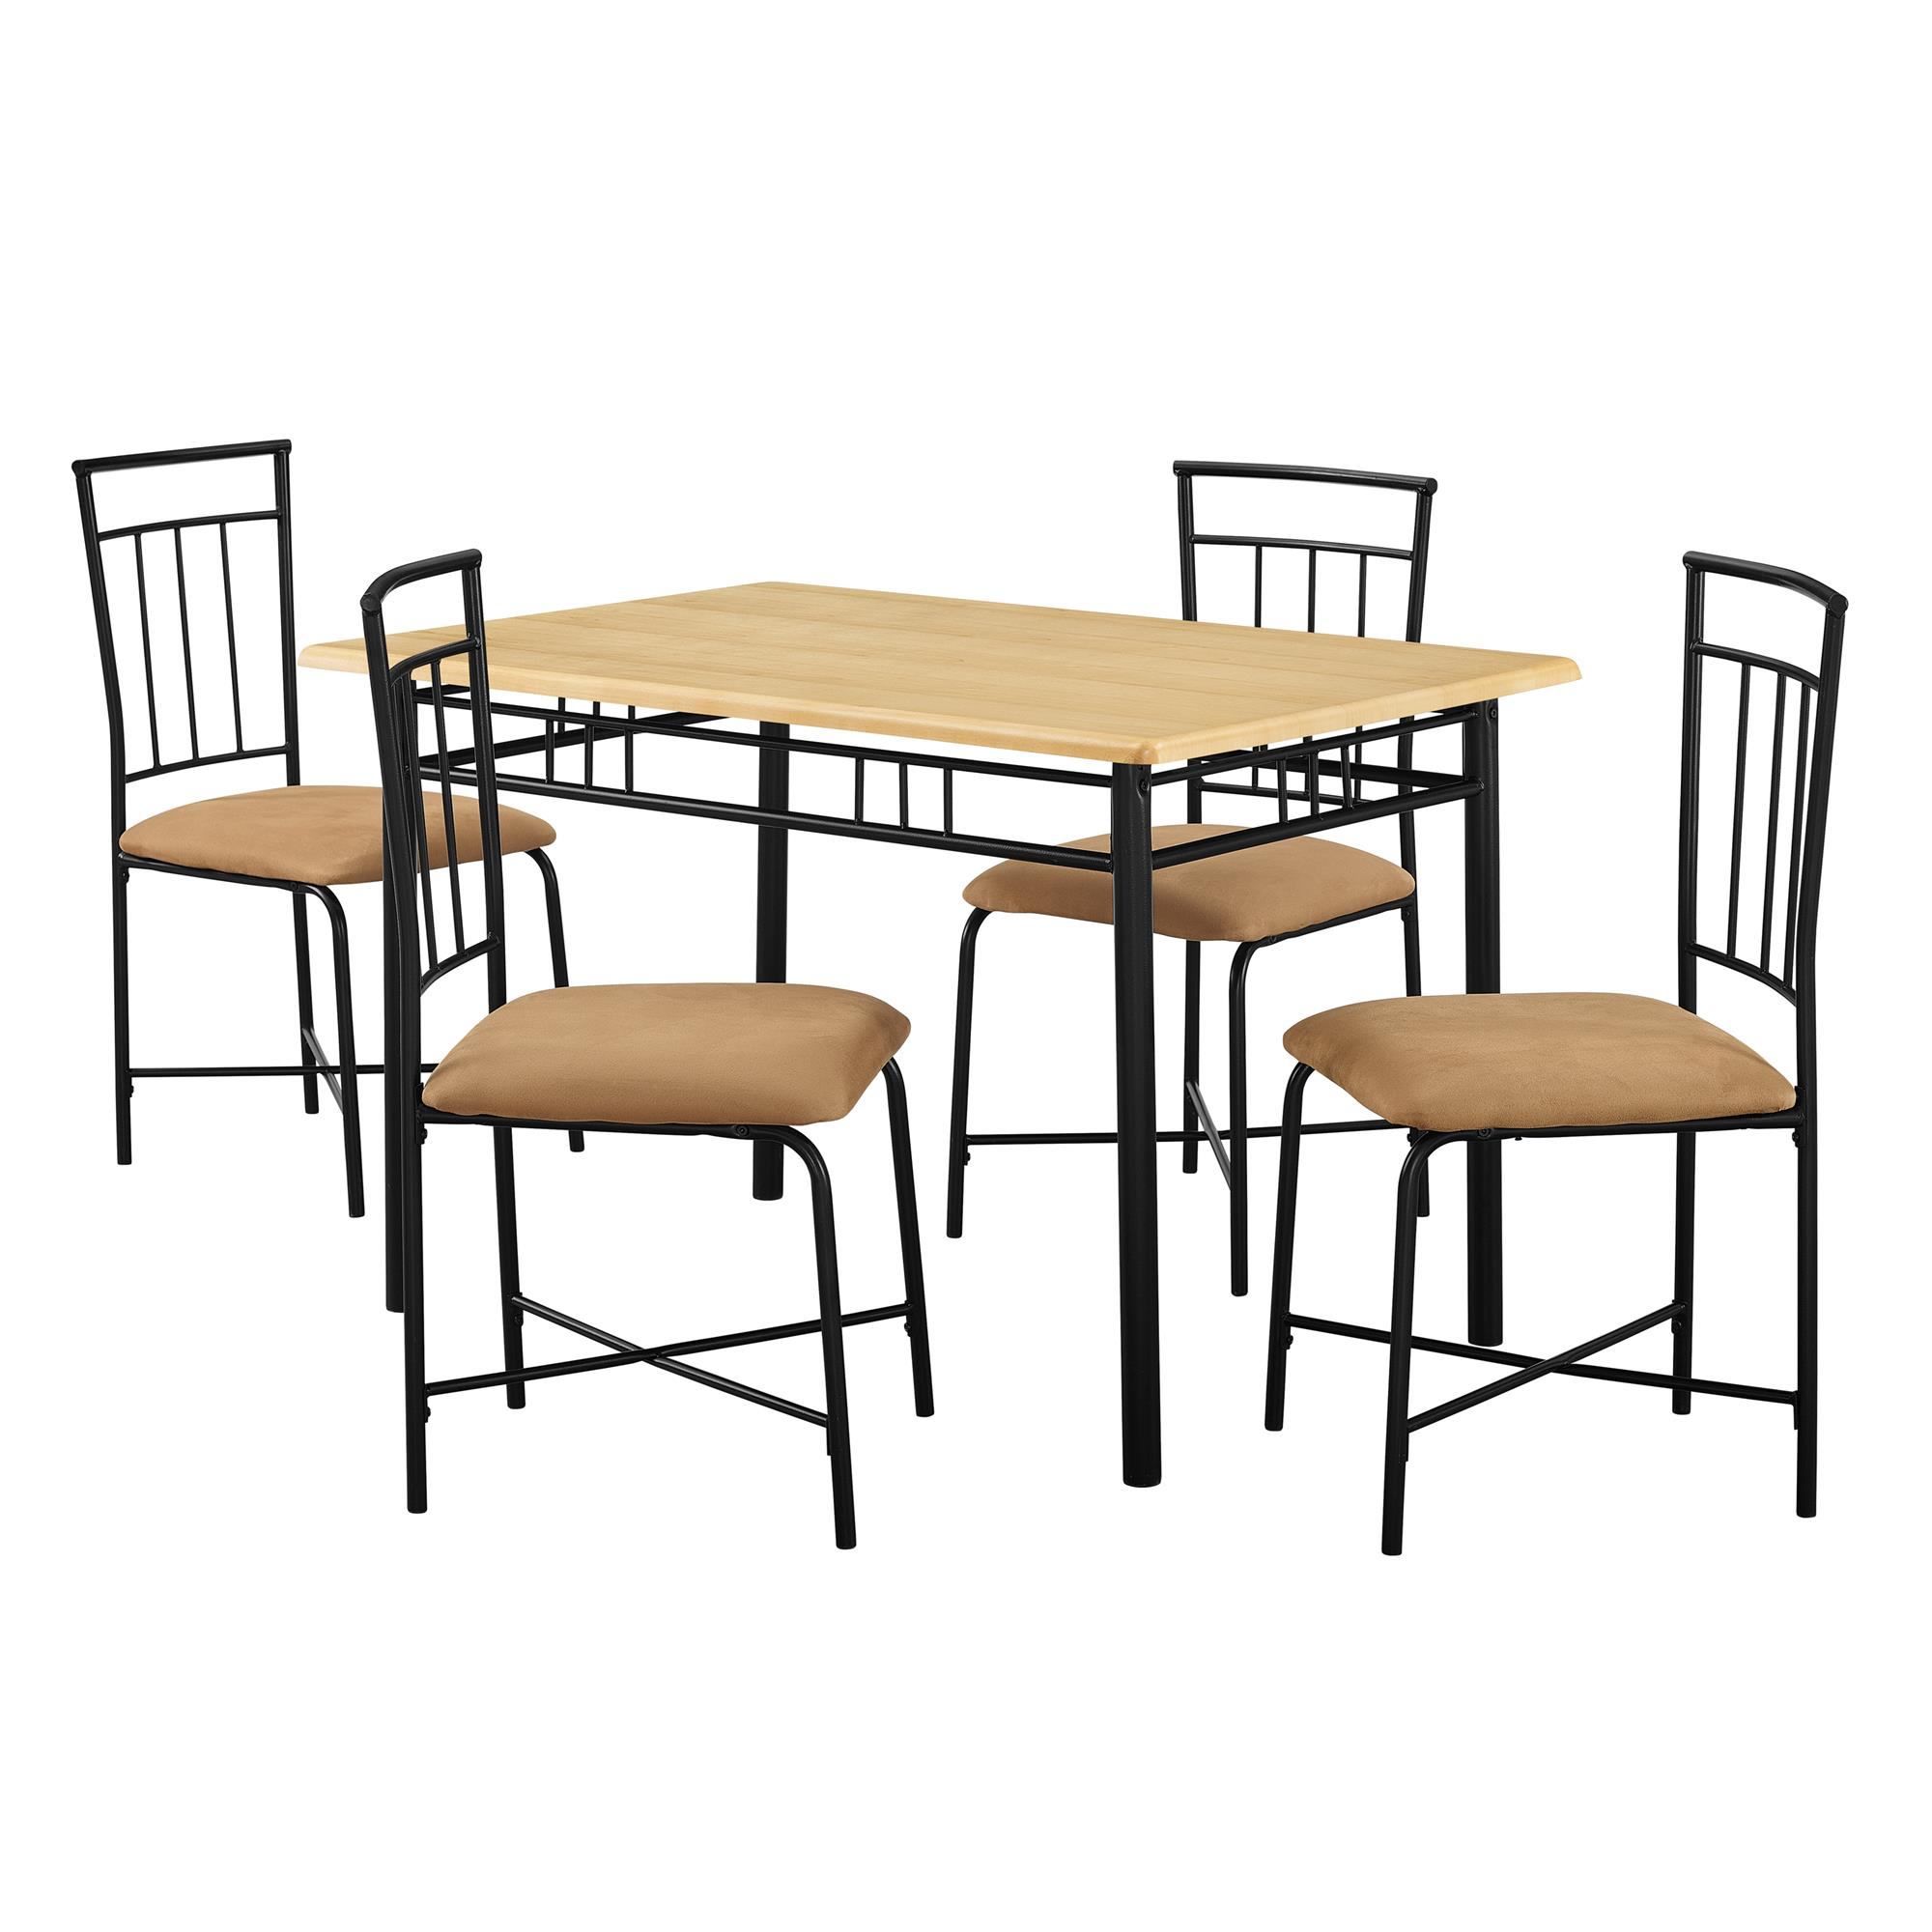 2018 West Hill Family Table 3 Piece Dining Sets Inside Mainstays 5 Piece Dining Set, Multiple Colors (Gallery 11 of 20)